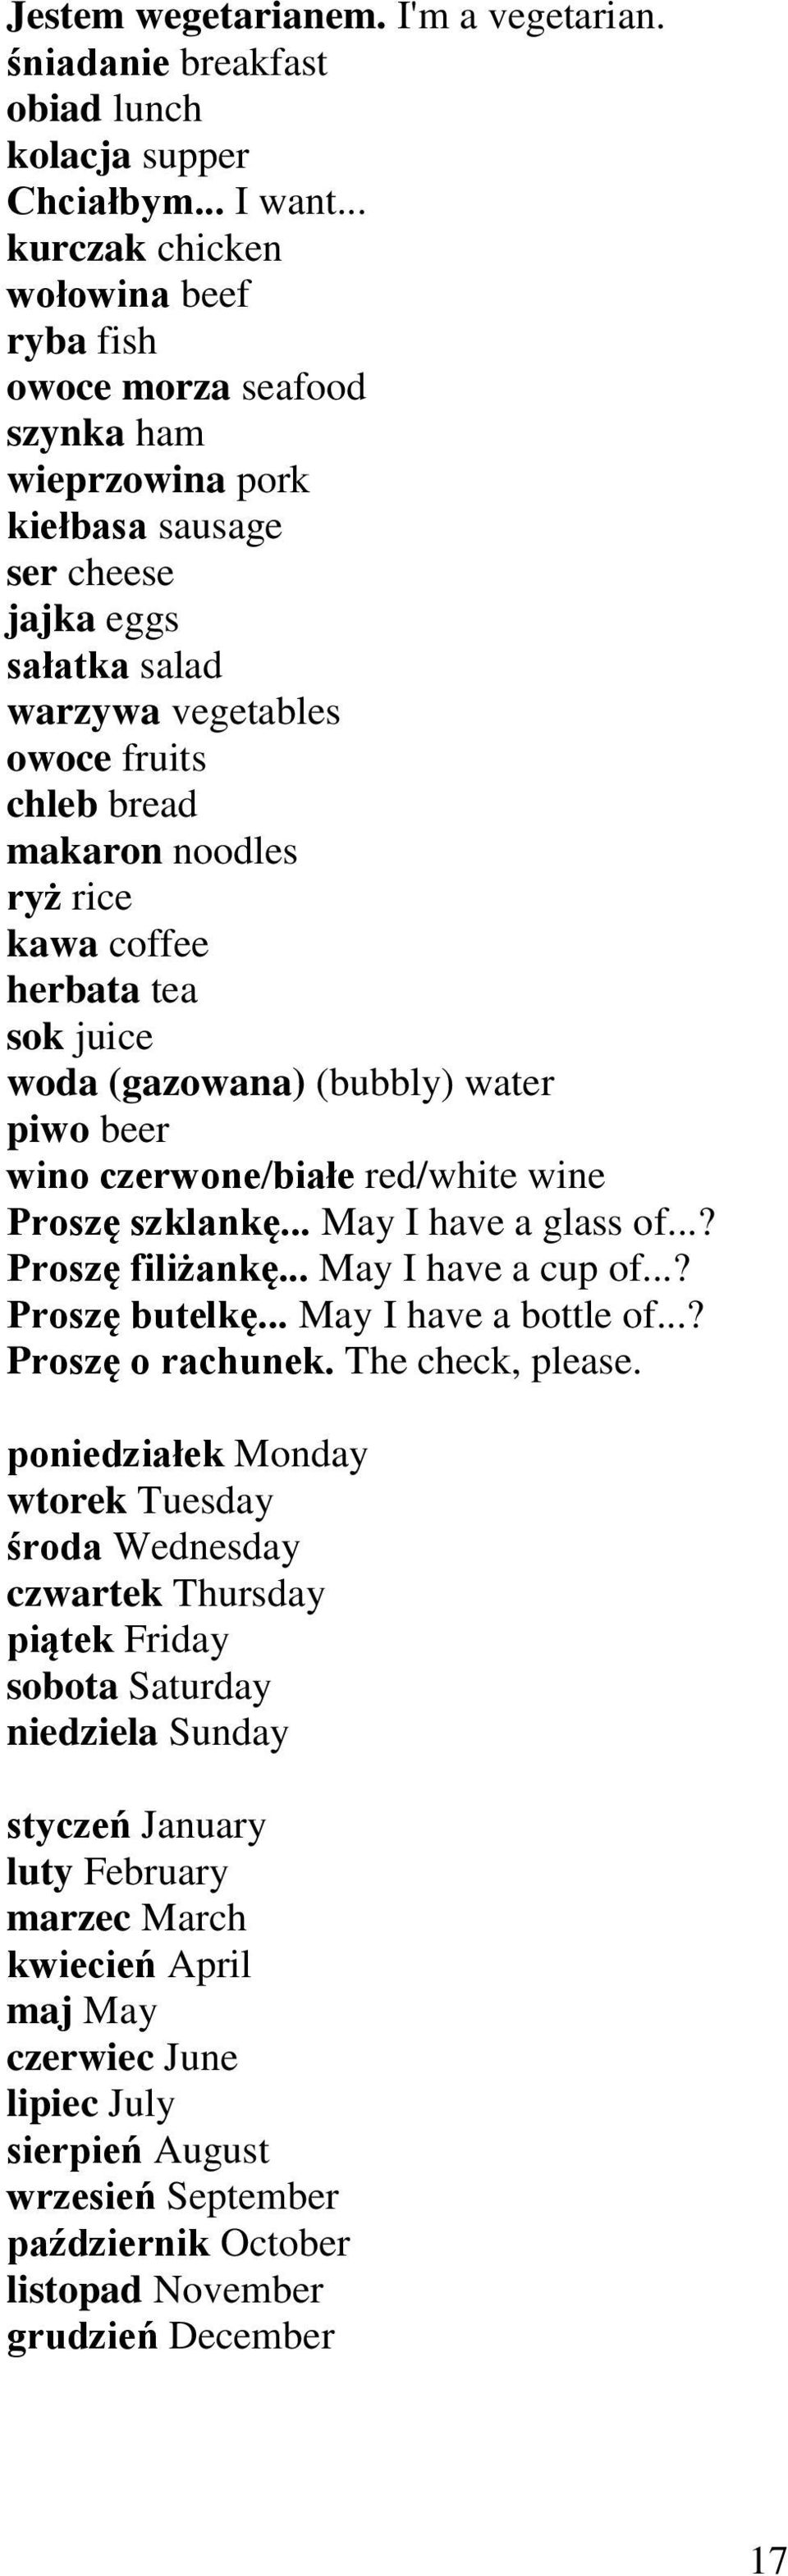 noodles ryż rice kawa coffee herbata tea sok juice woda (gazowana) (bubbly) water piwo beer wino czerwone/białe red/white wine Proszę szklankę... May I have a glass of...? Proszę filiżankę.